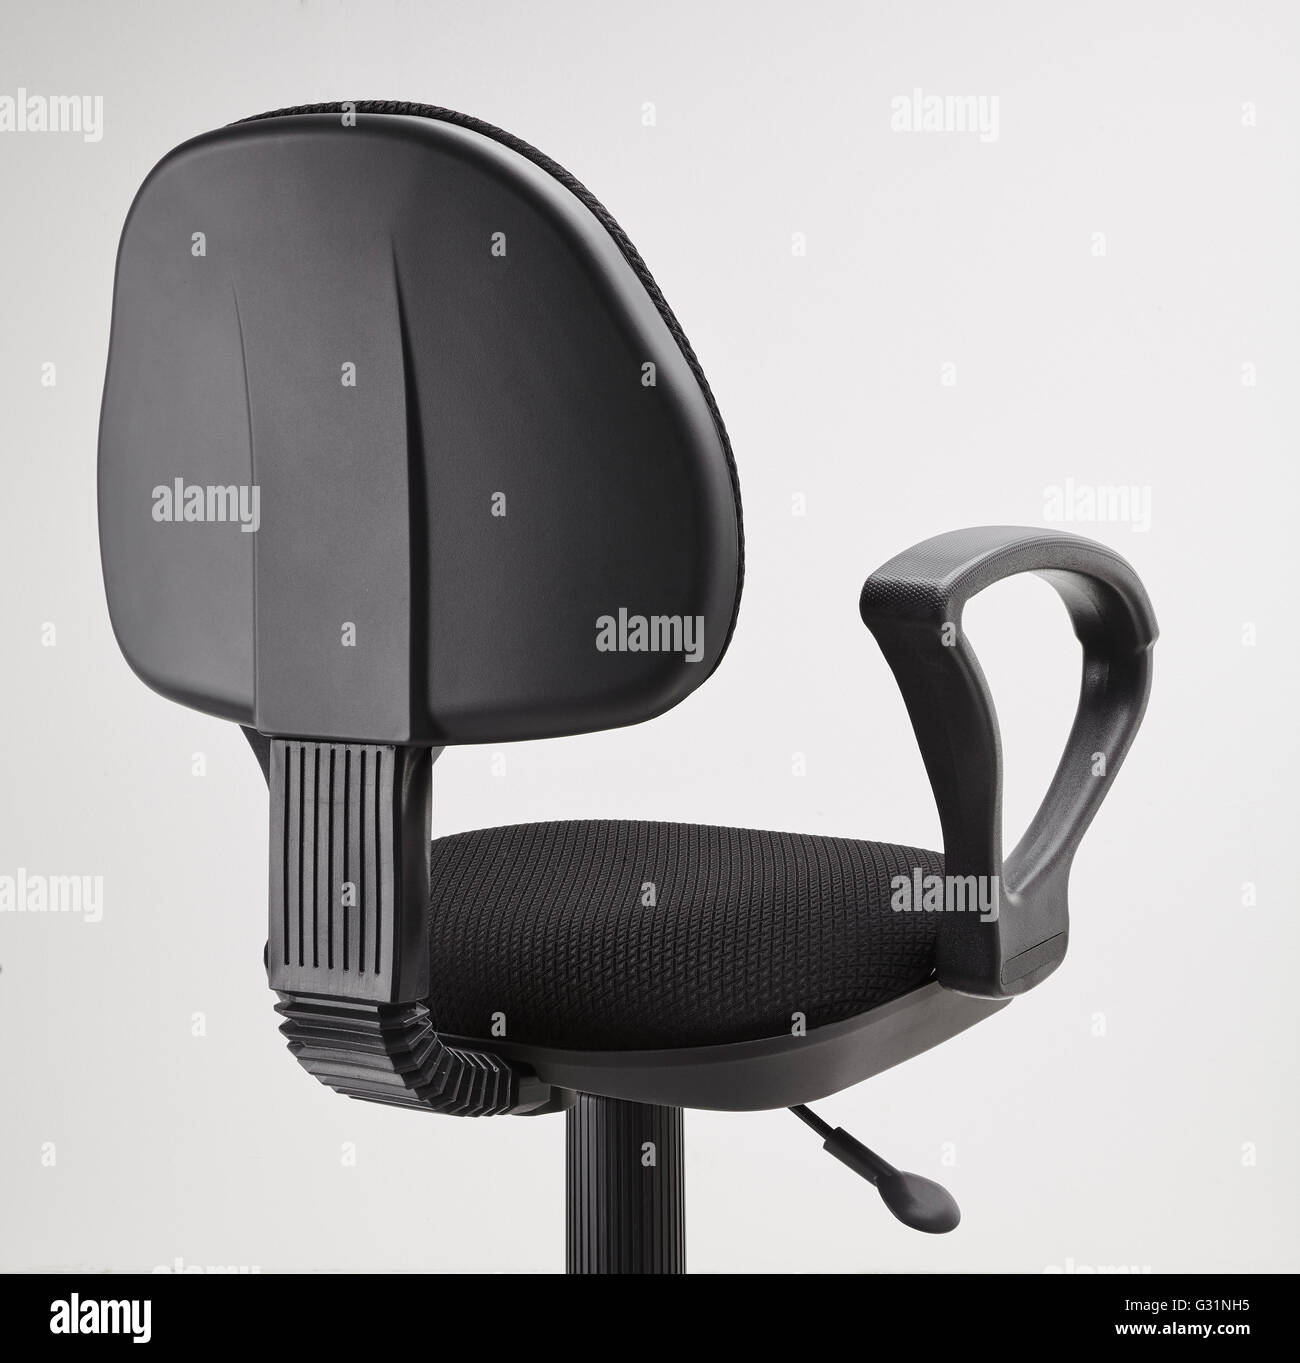 chair on wheels covers bulk sale back view of black office swivel with a mechanism for adjusting the height isolated white background